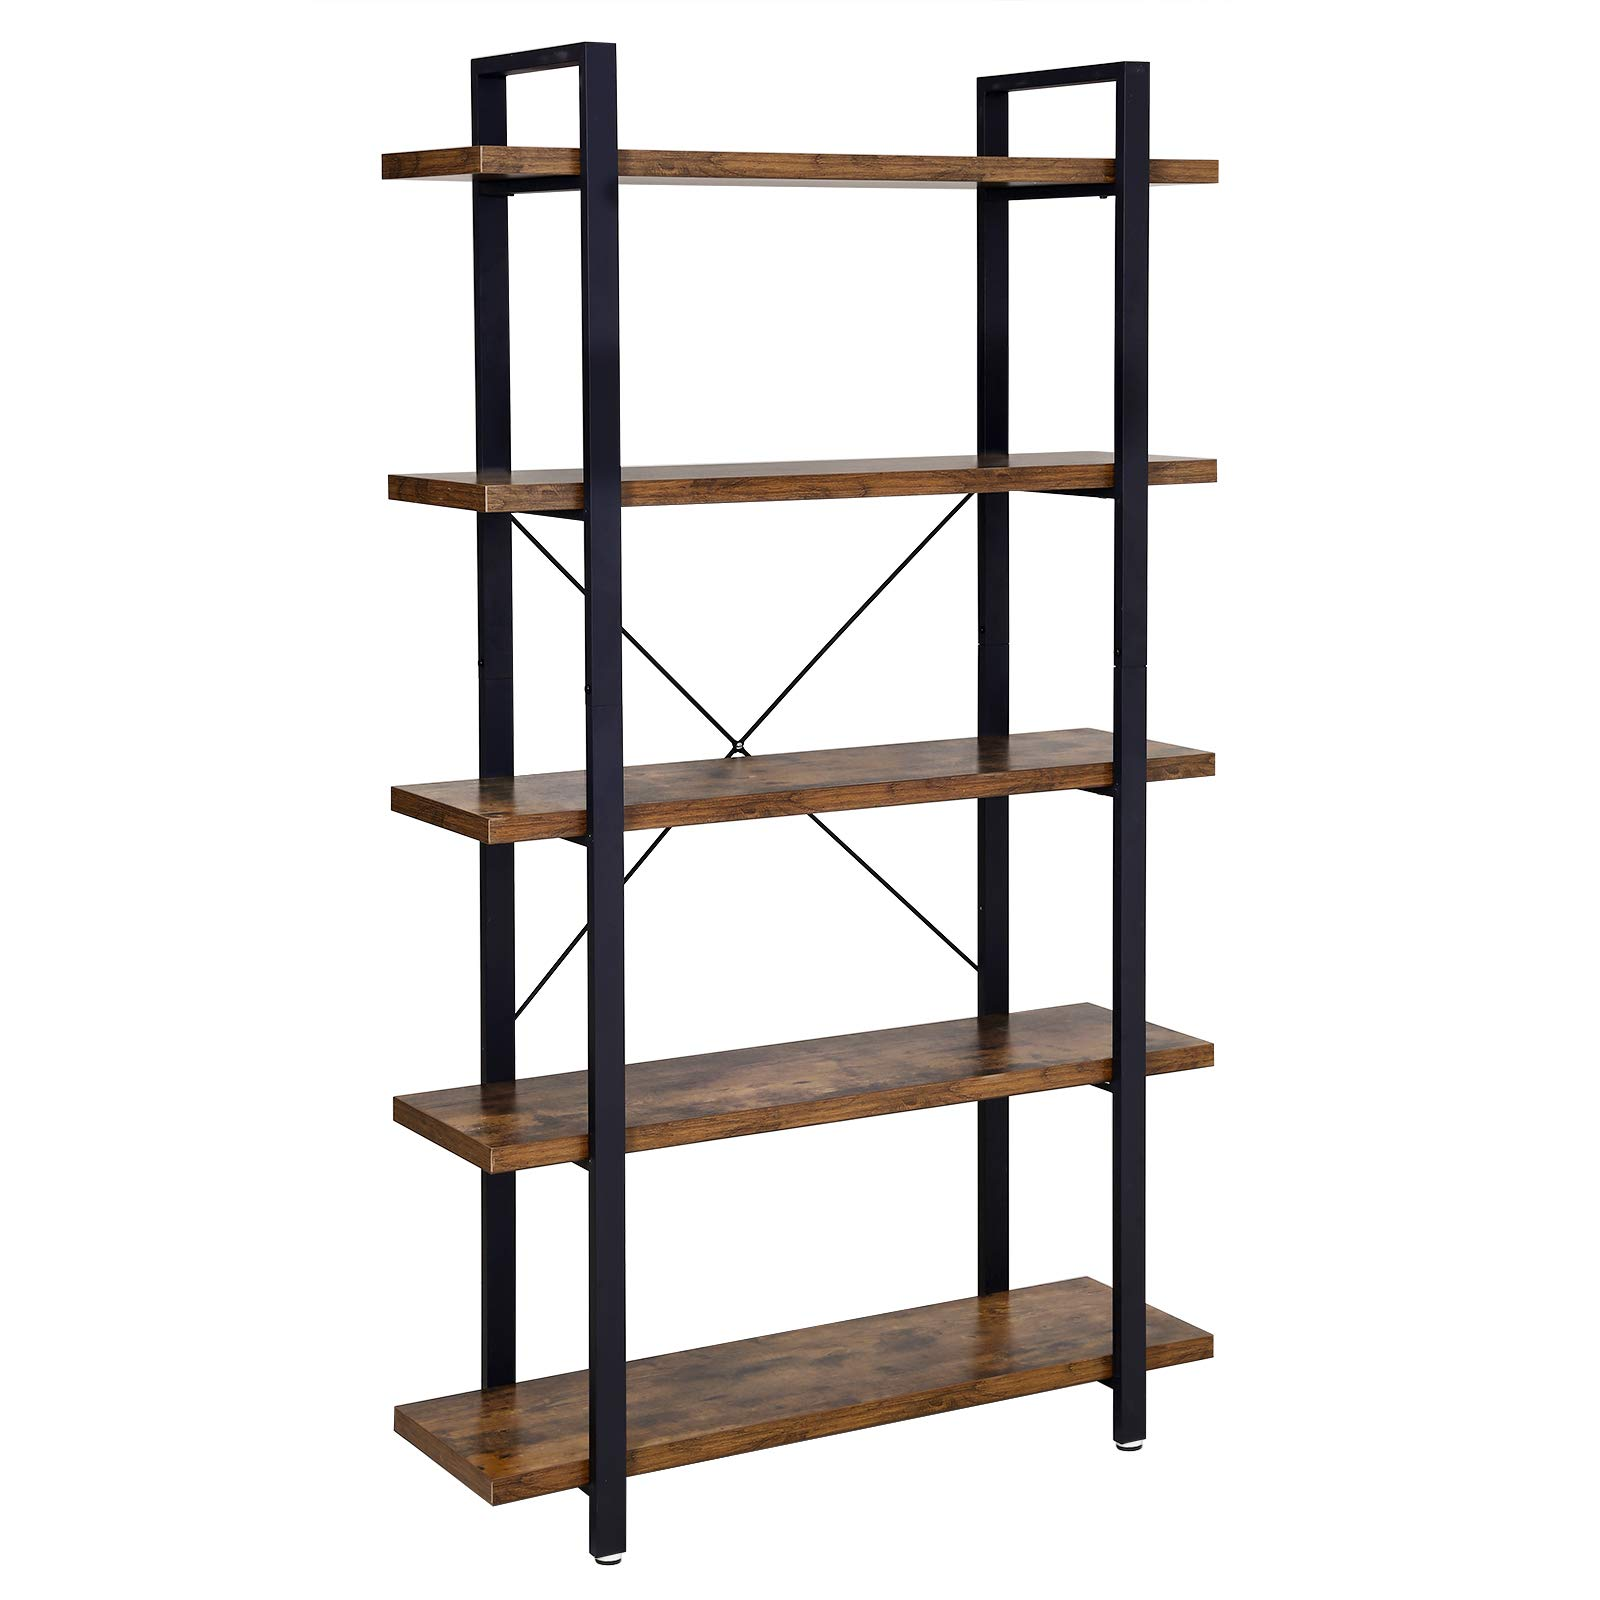 VASAGLE Bookshelf, 5-Tier Industrial Stable Bookcase, Storage Rack, Standing Shelf, Easy Assembly, Living Room, Bedroom, Office, Rustic Brown and Black LLS55BX